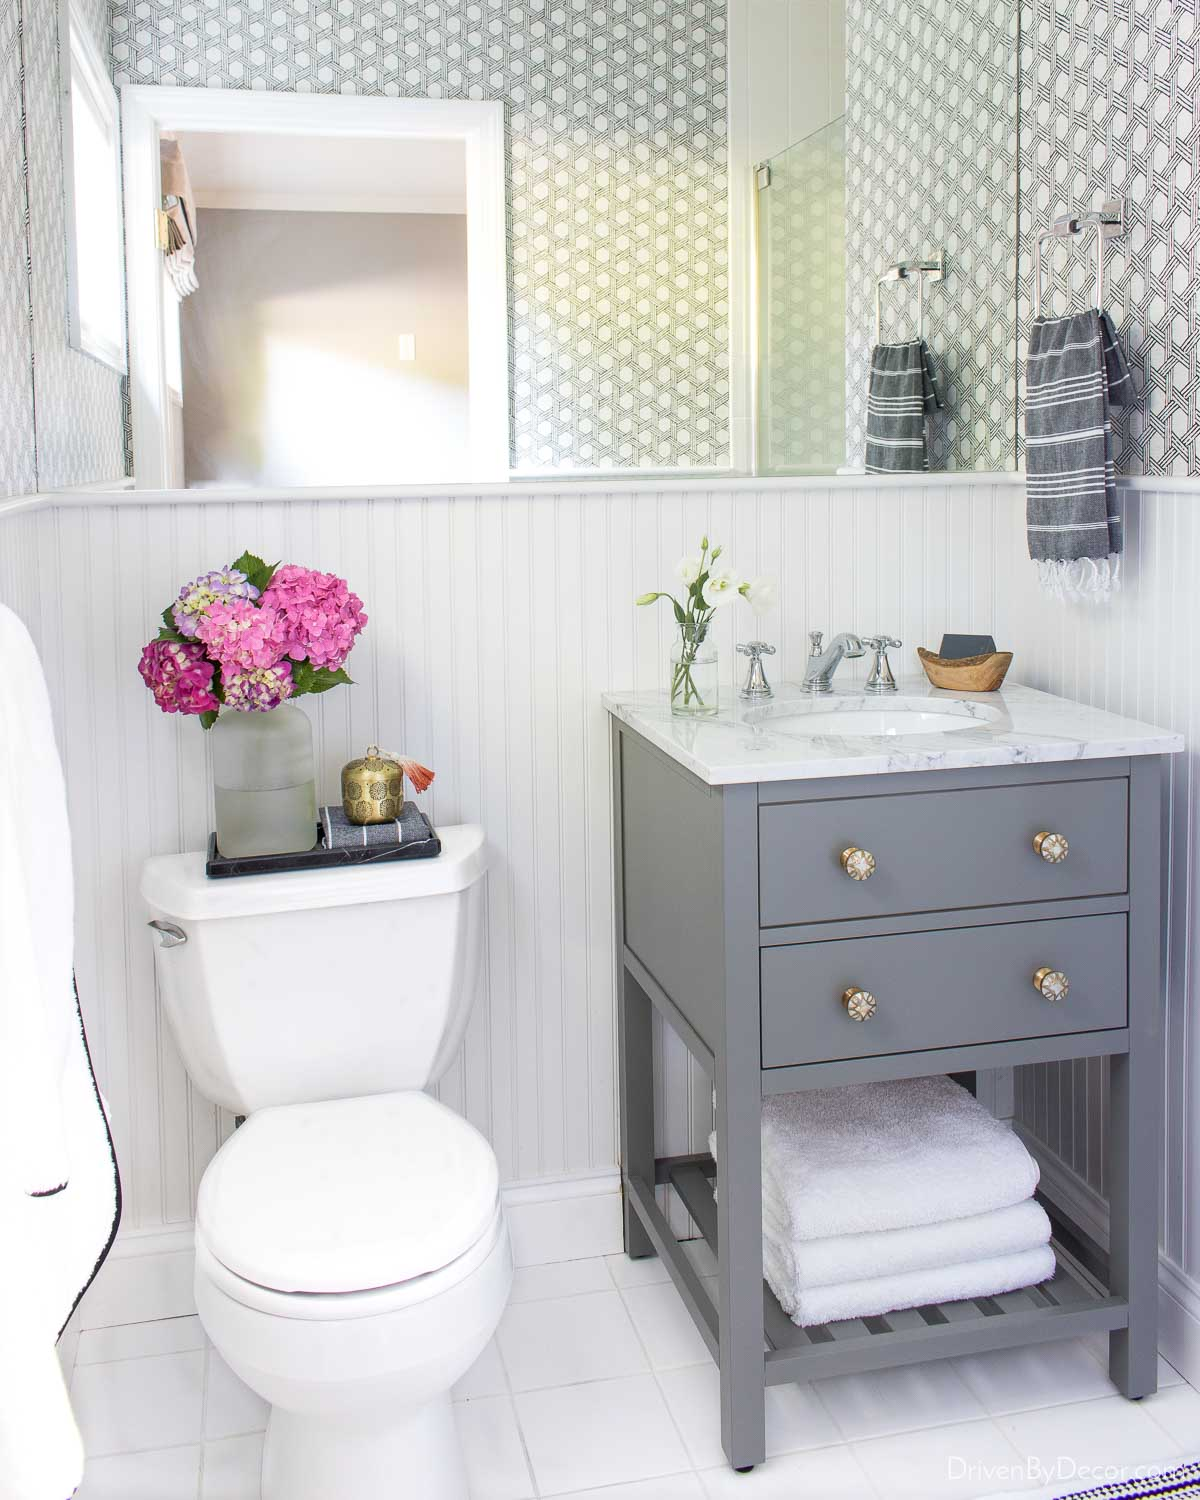 New bathroom cabinet knobs made this small vanity so much more stylish!